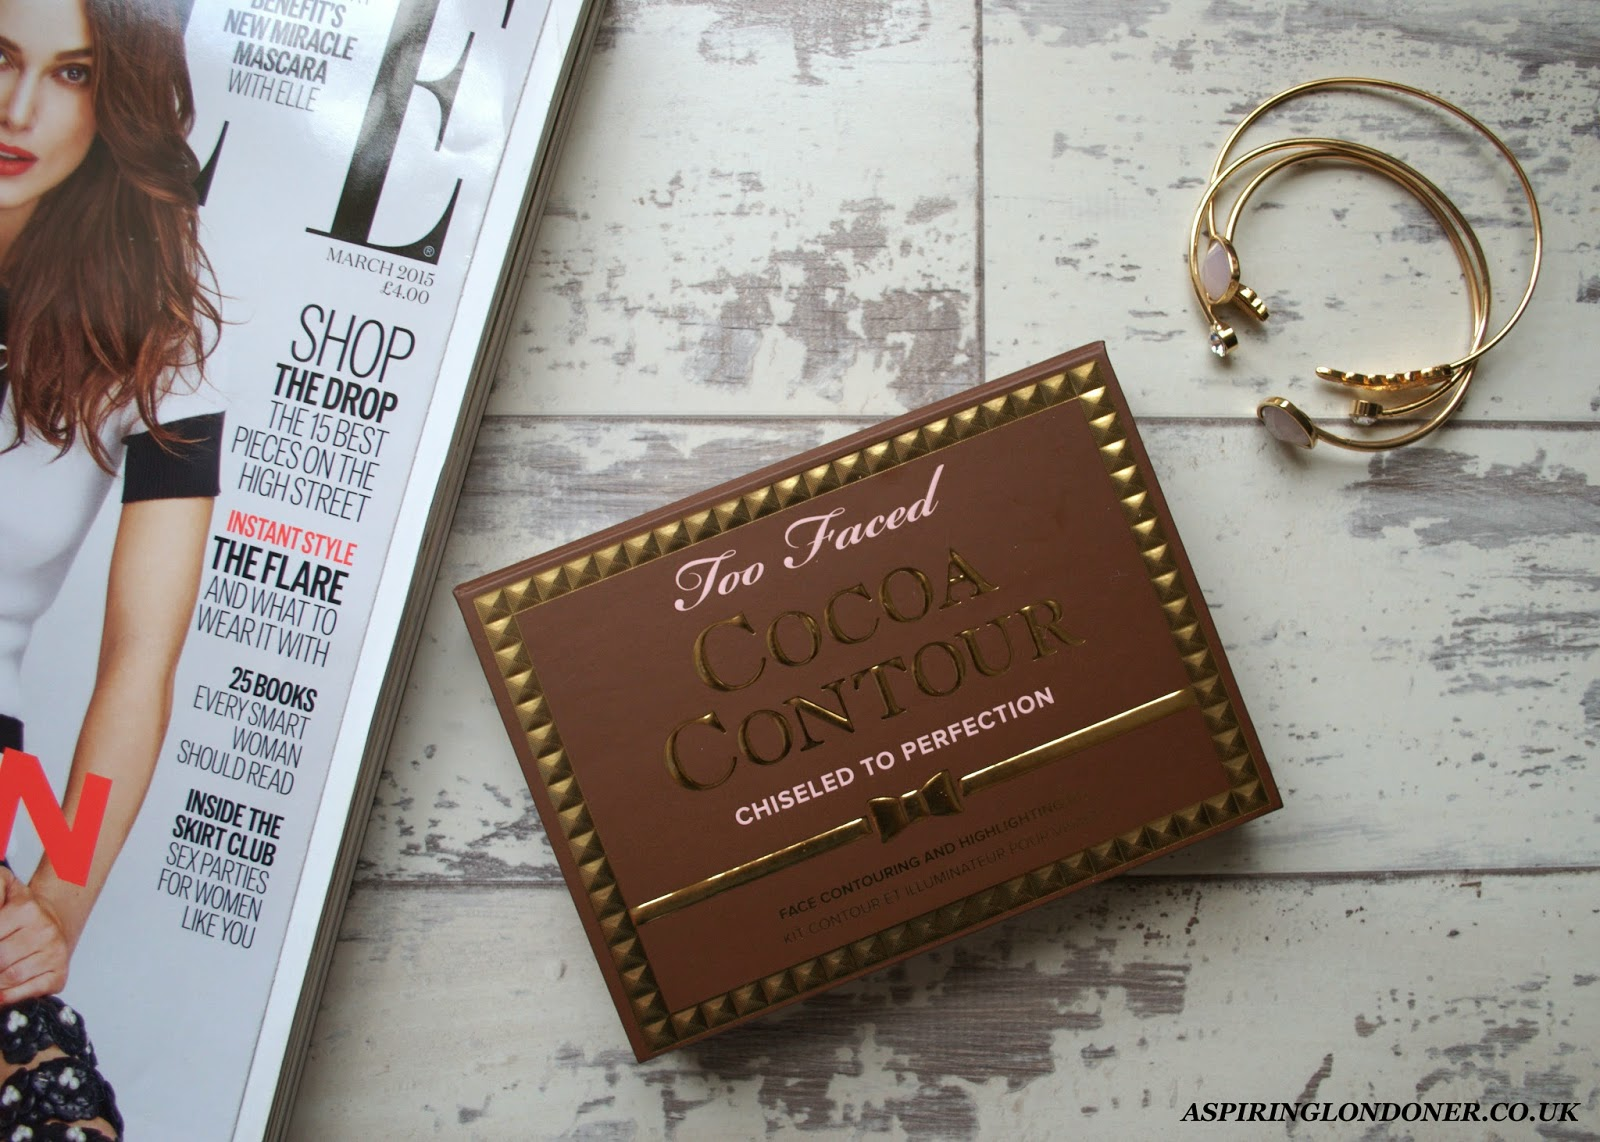 Too Faced Cocoa Contour Chiseled To Perfection Palette Review - Aspiring Londoner